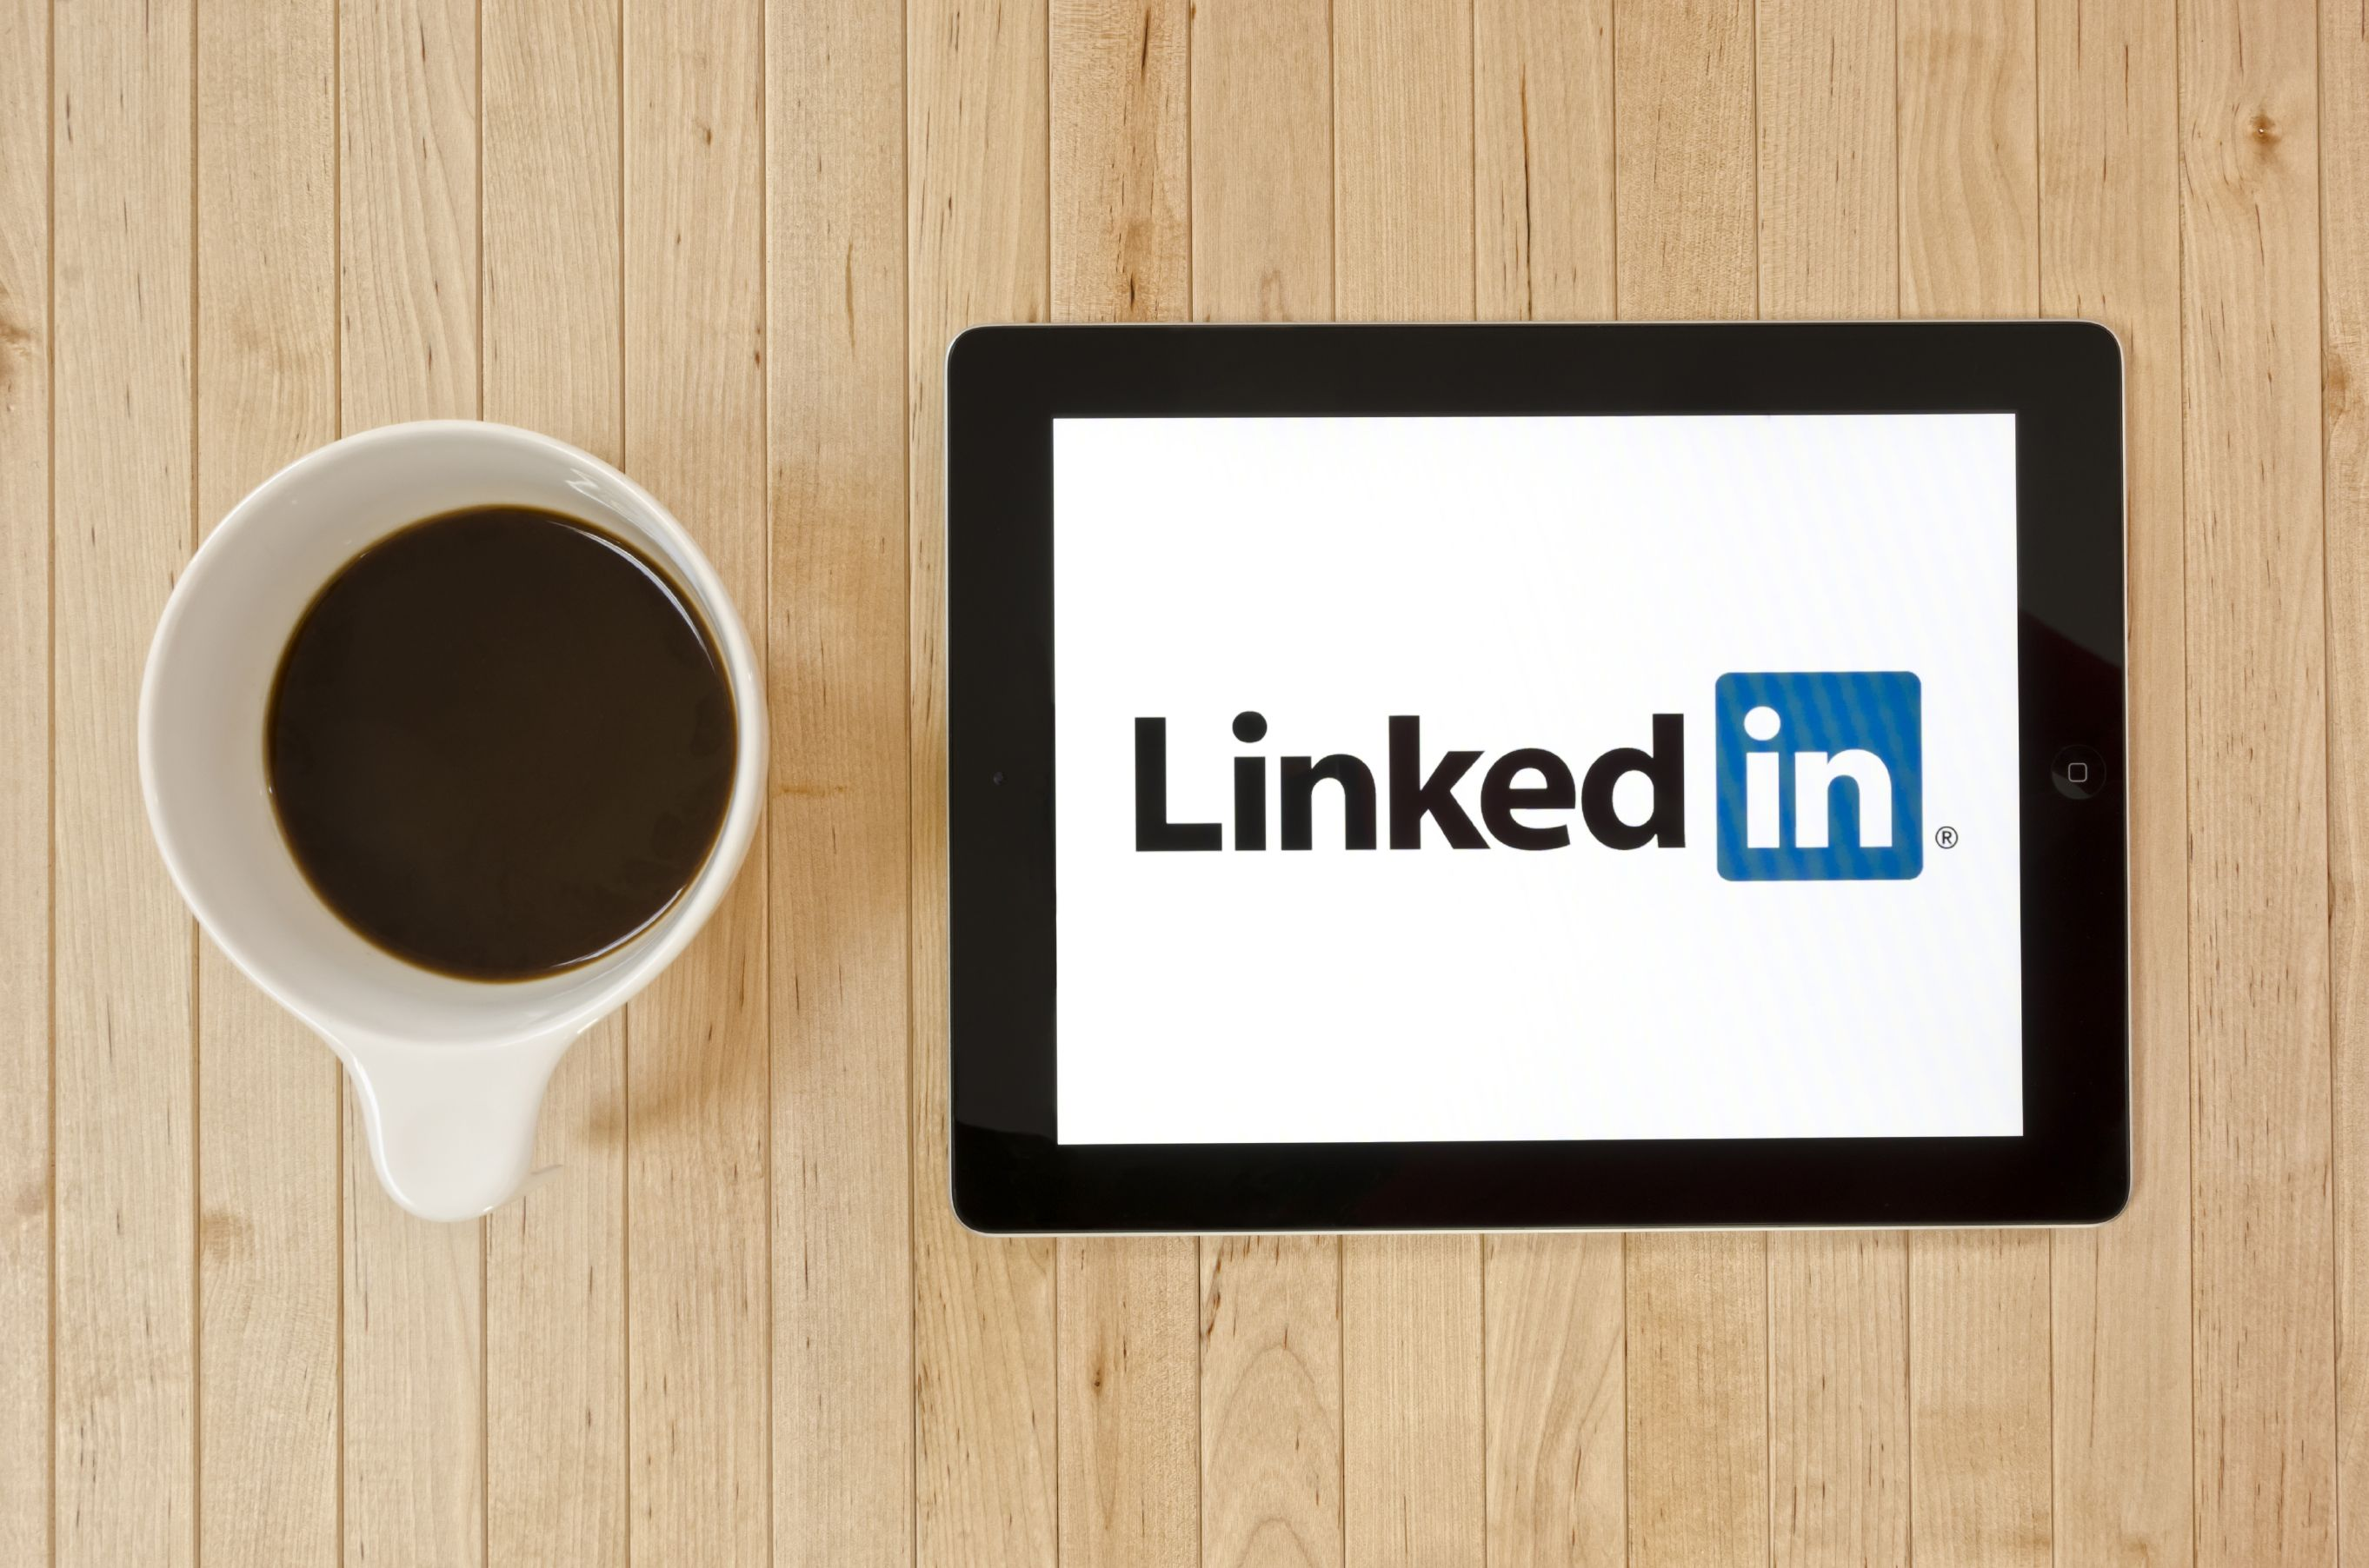 Mobile Strategy of LinkedIn You Should Know